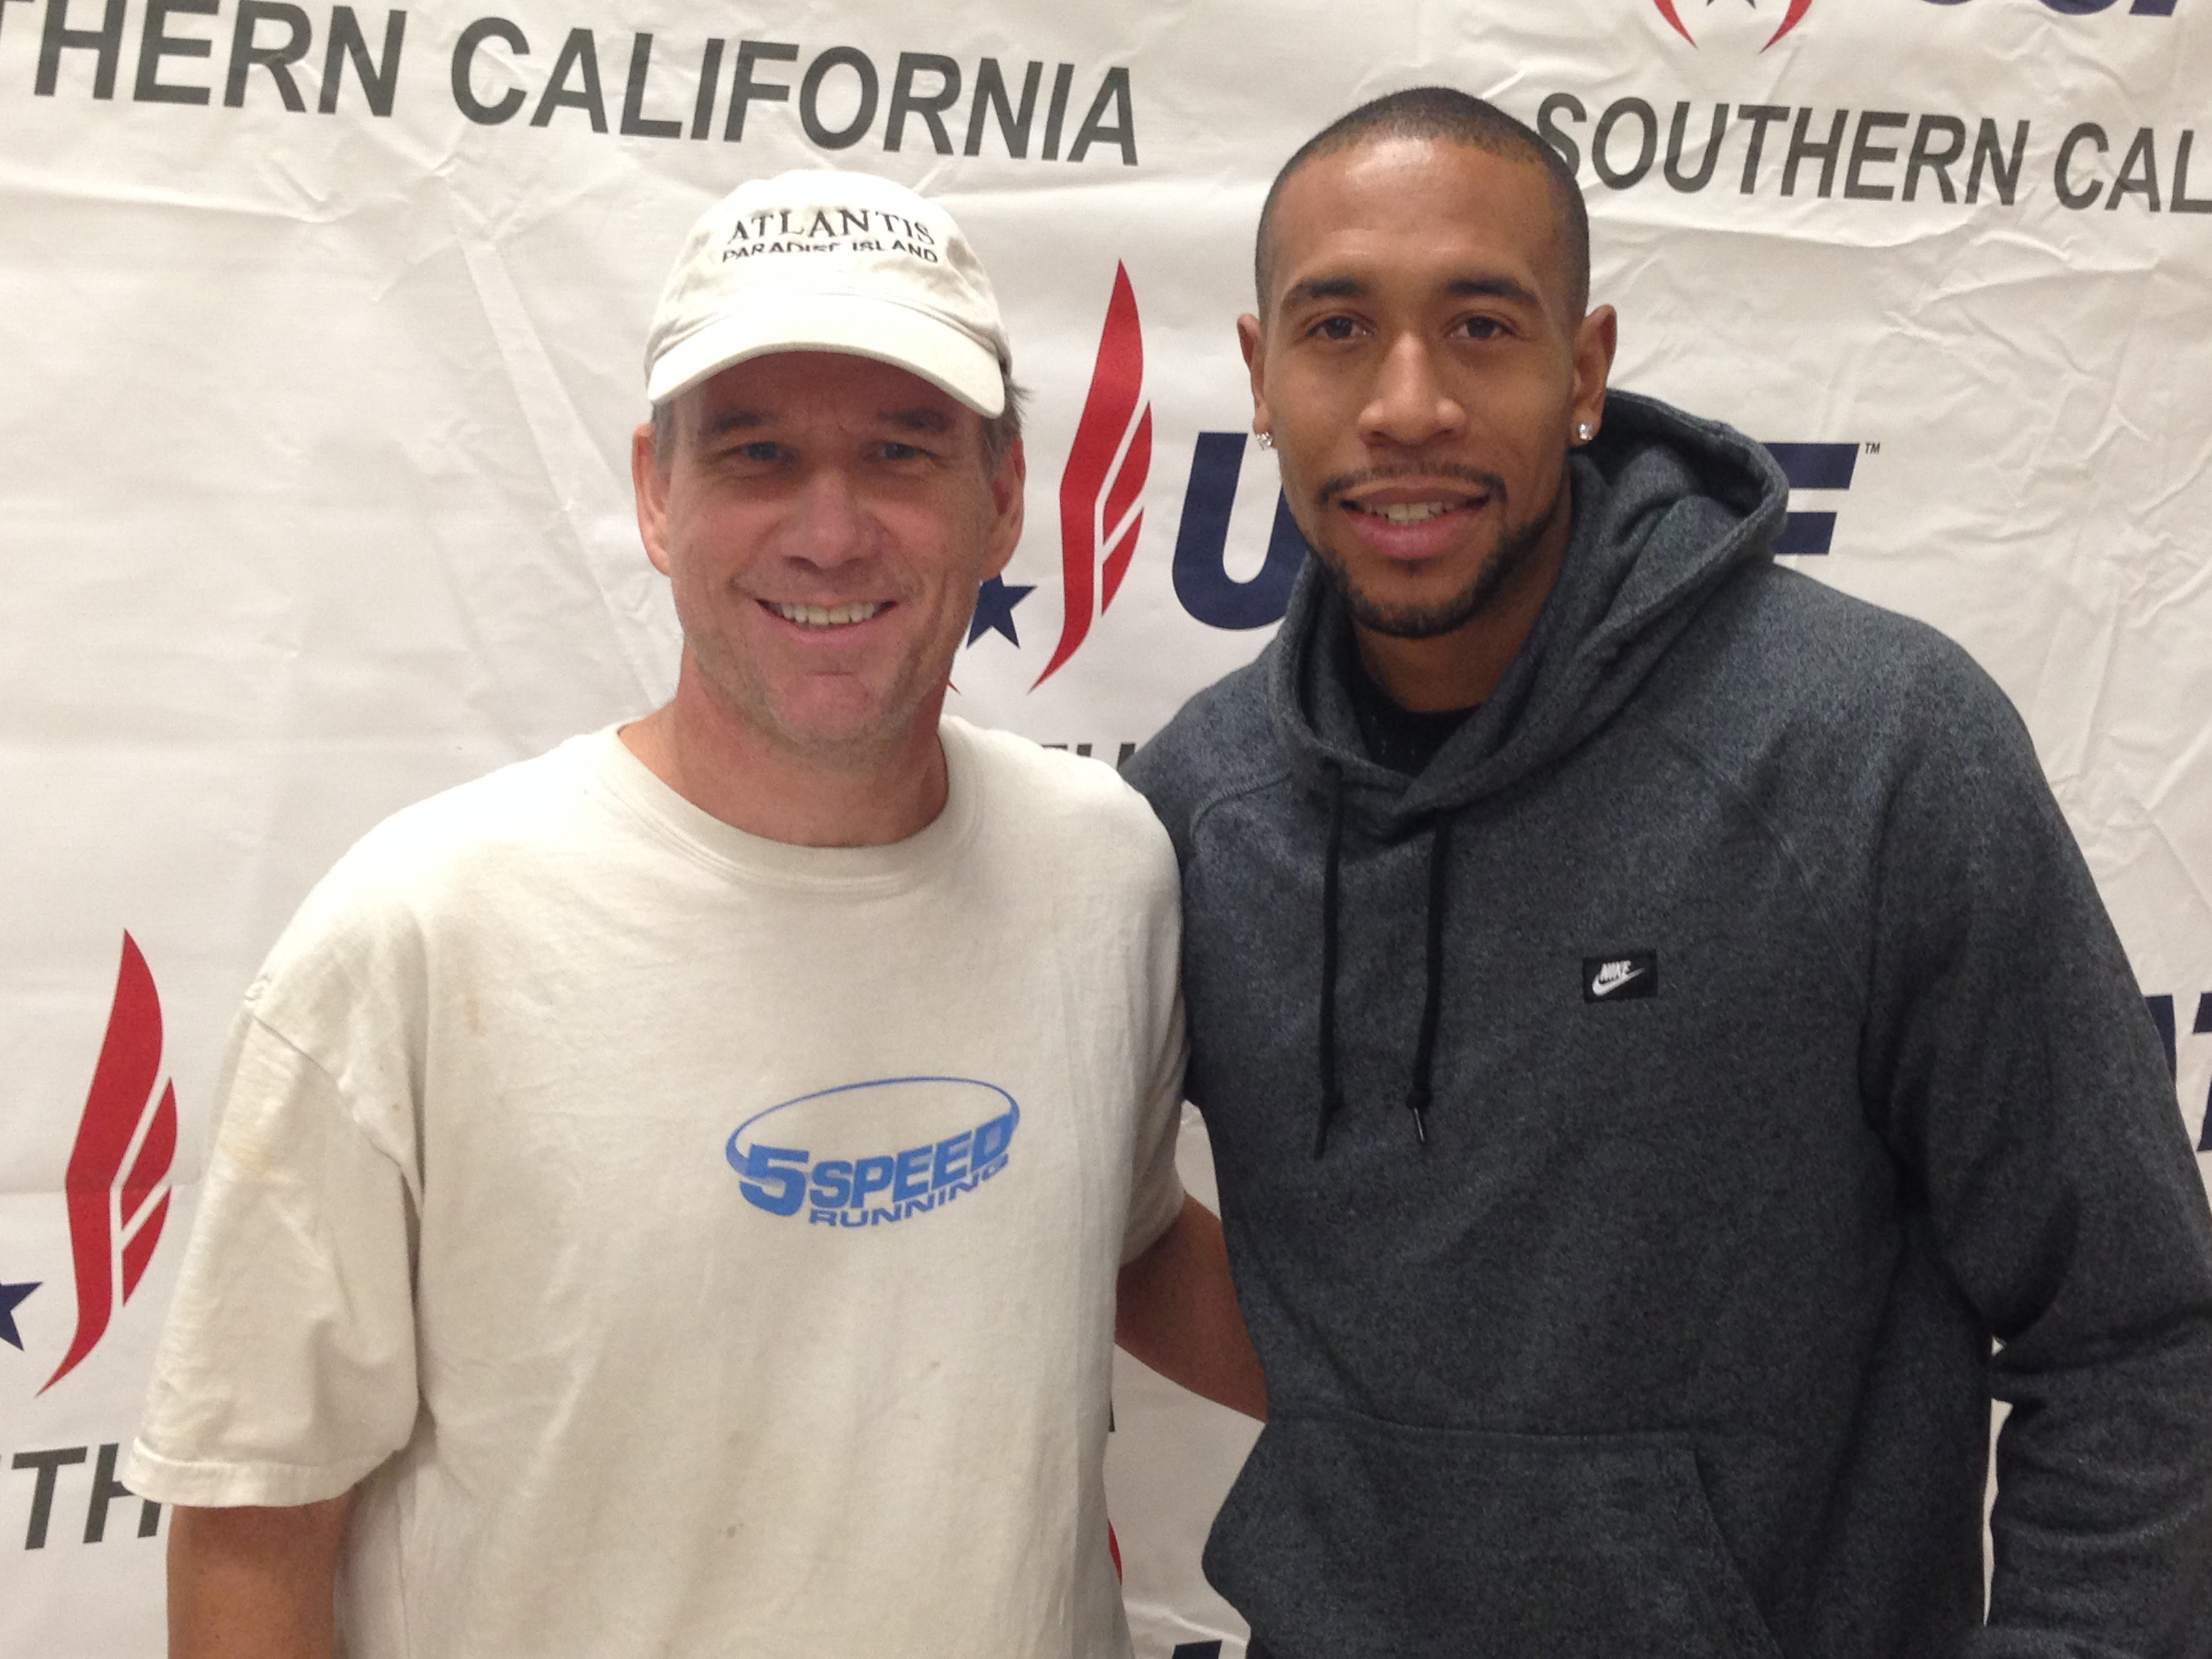 Coach Rickerman is a USATF Certified Coach. (Pictured here with Bryshon Nellum at a USATF elementary school event)